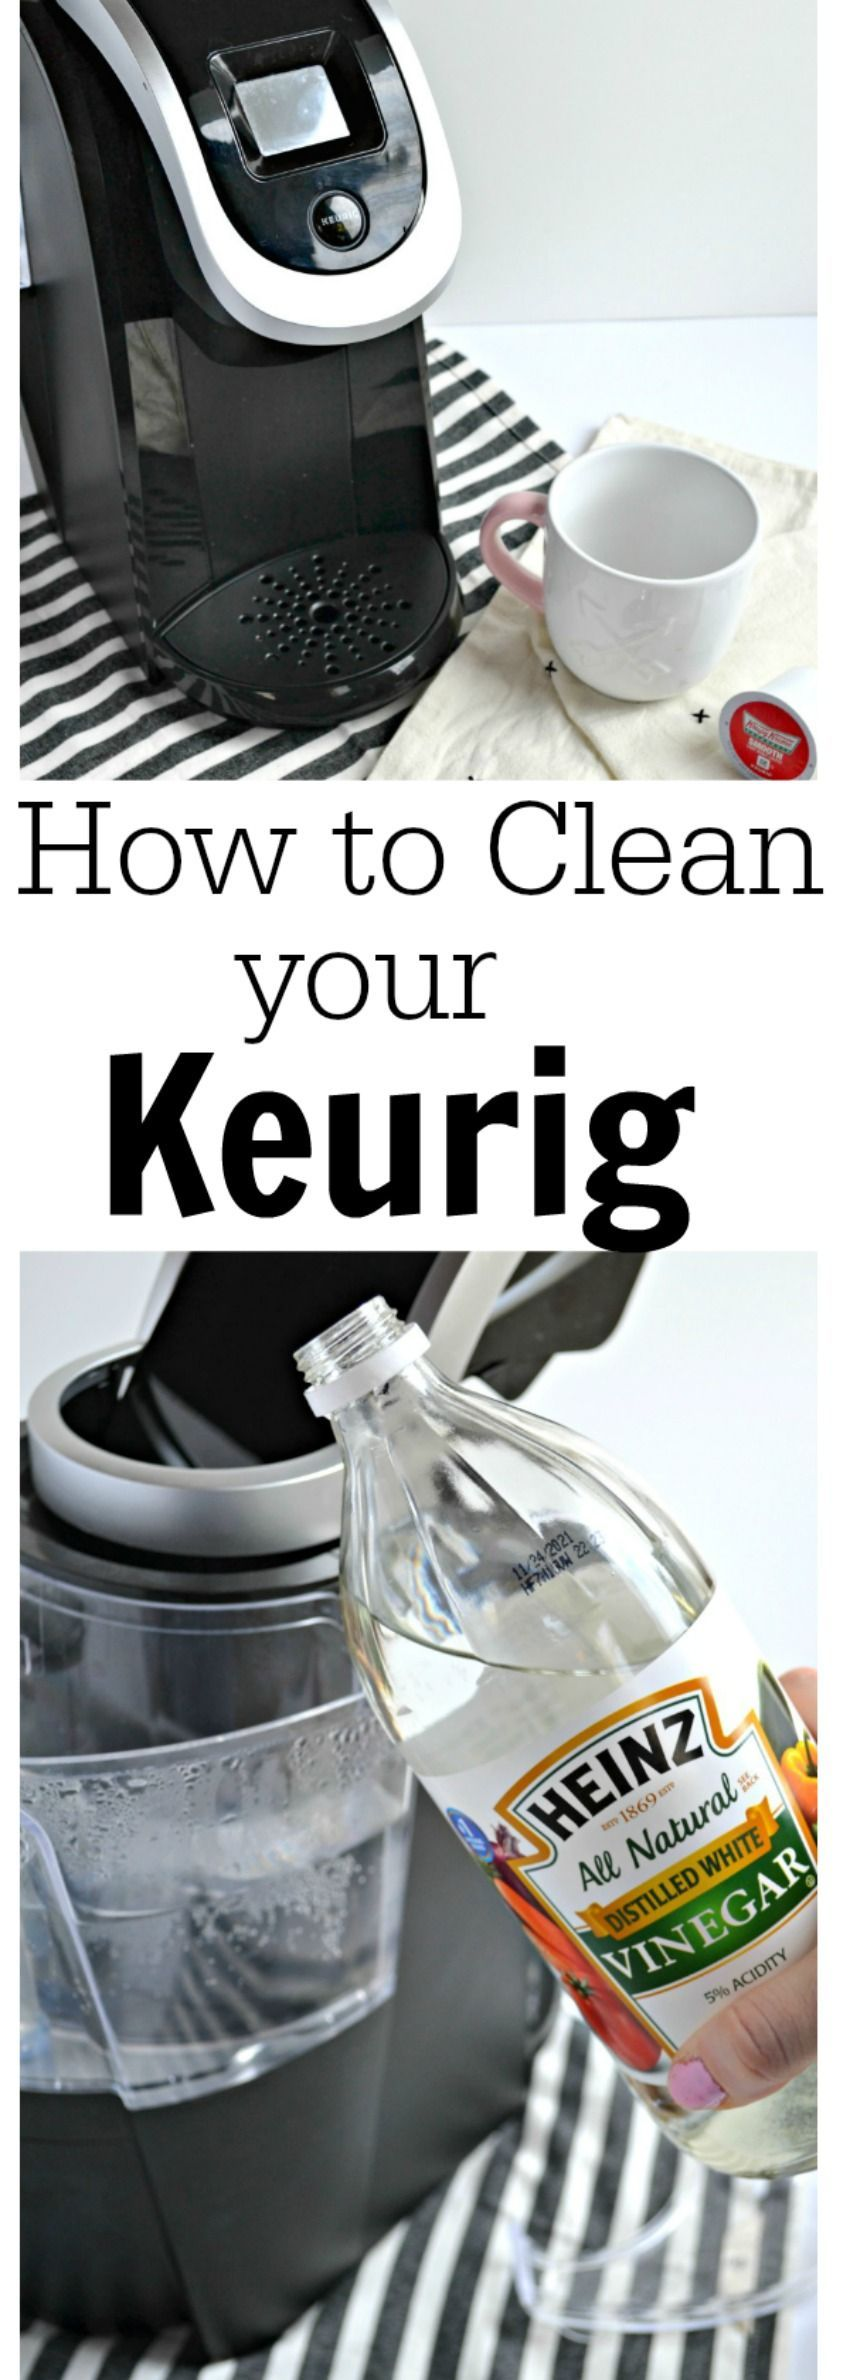 How to Clean a Keurig Coffee Maker. The best way to clean